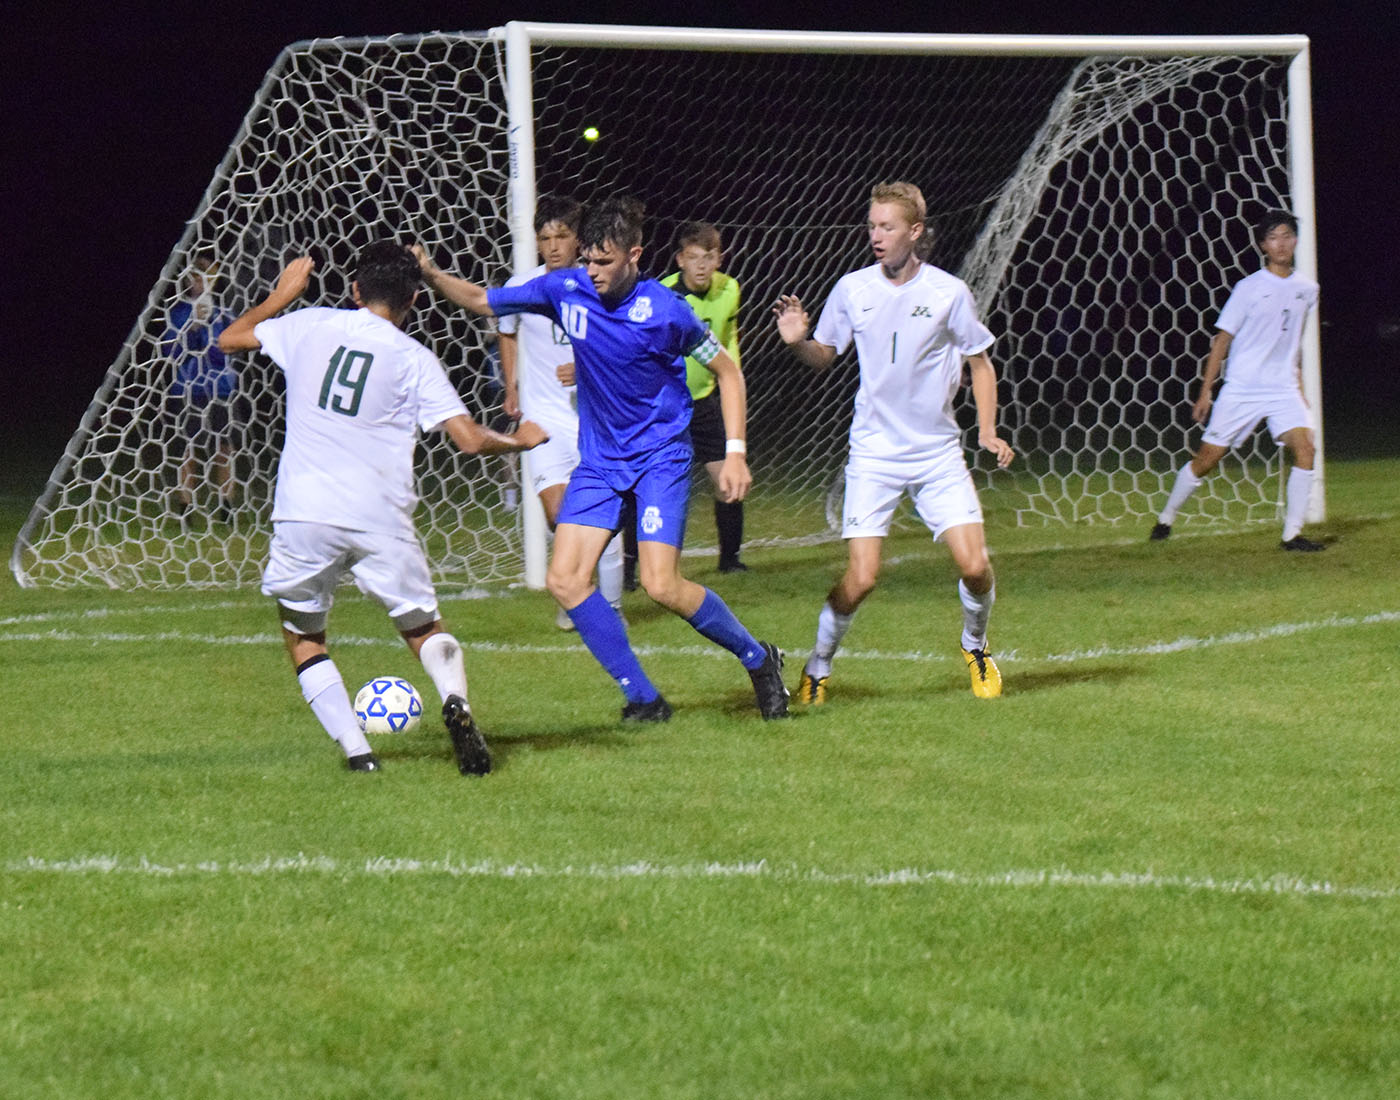 First team All-State winner, Sam Henson playing defense against Rochester Mayo.